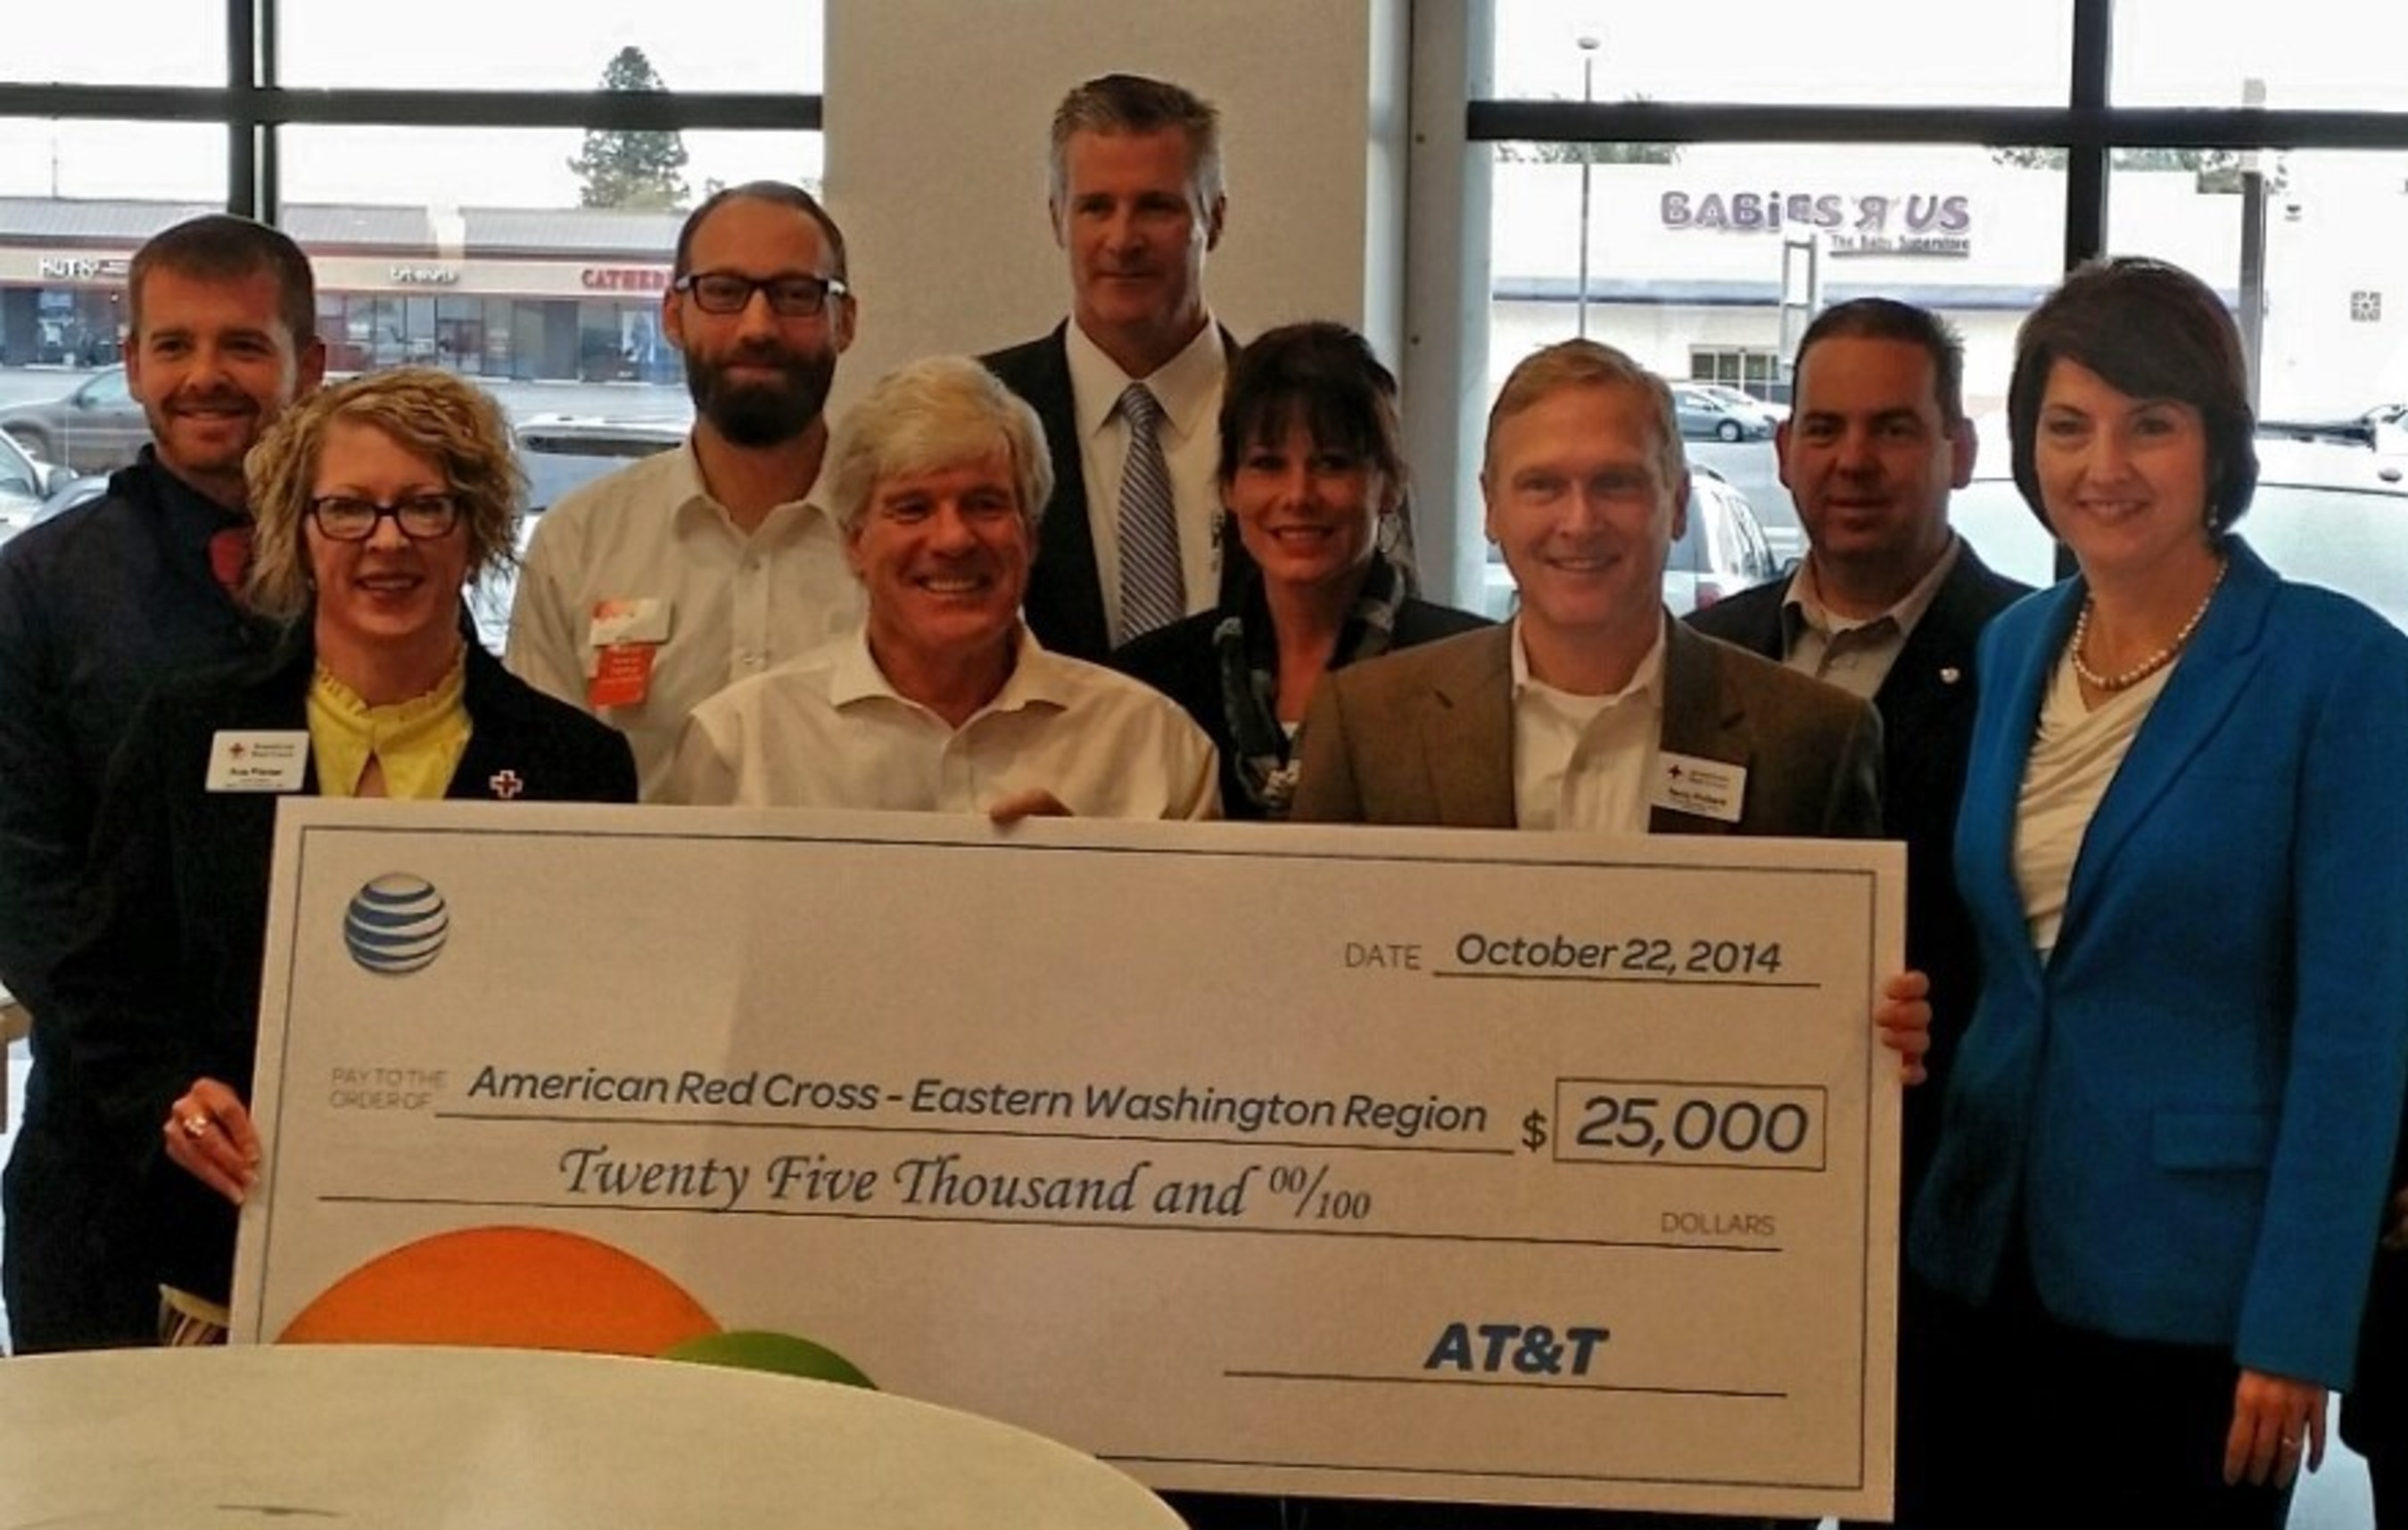 Congresswoman Cathy McMorris Rodgers (right) Joins AT&T personnel and American Red Cross representatives for ...